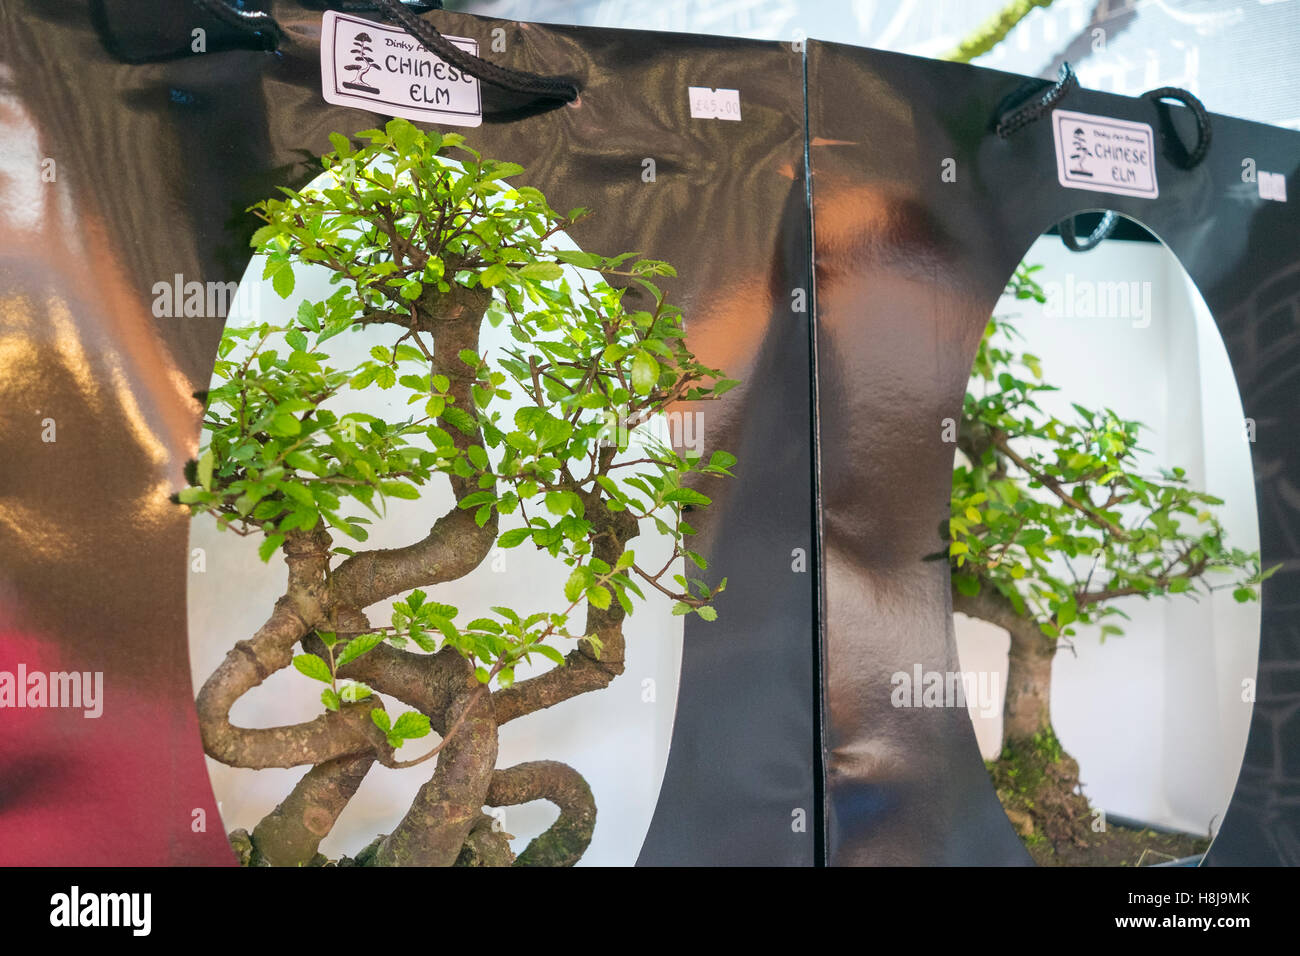 Chinese Elm Stock Photos Chinese Elm Stock Images Alamy